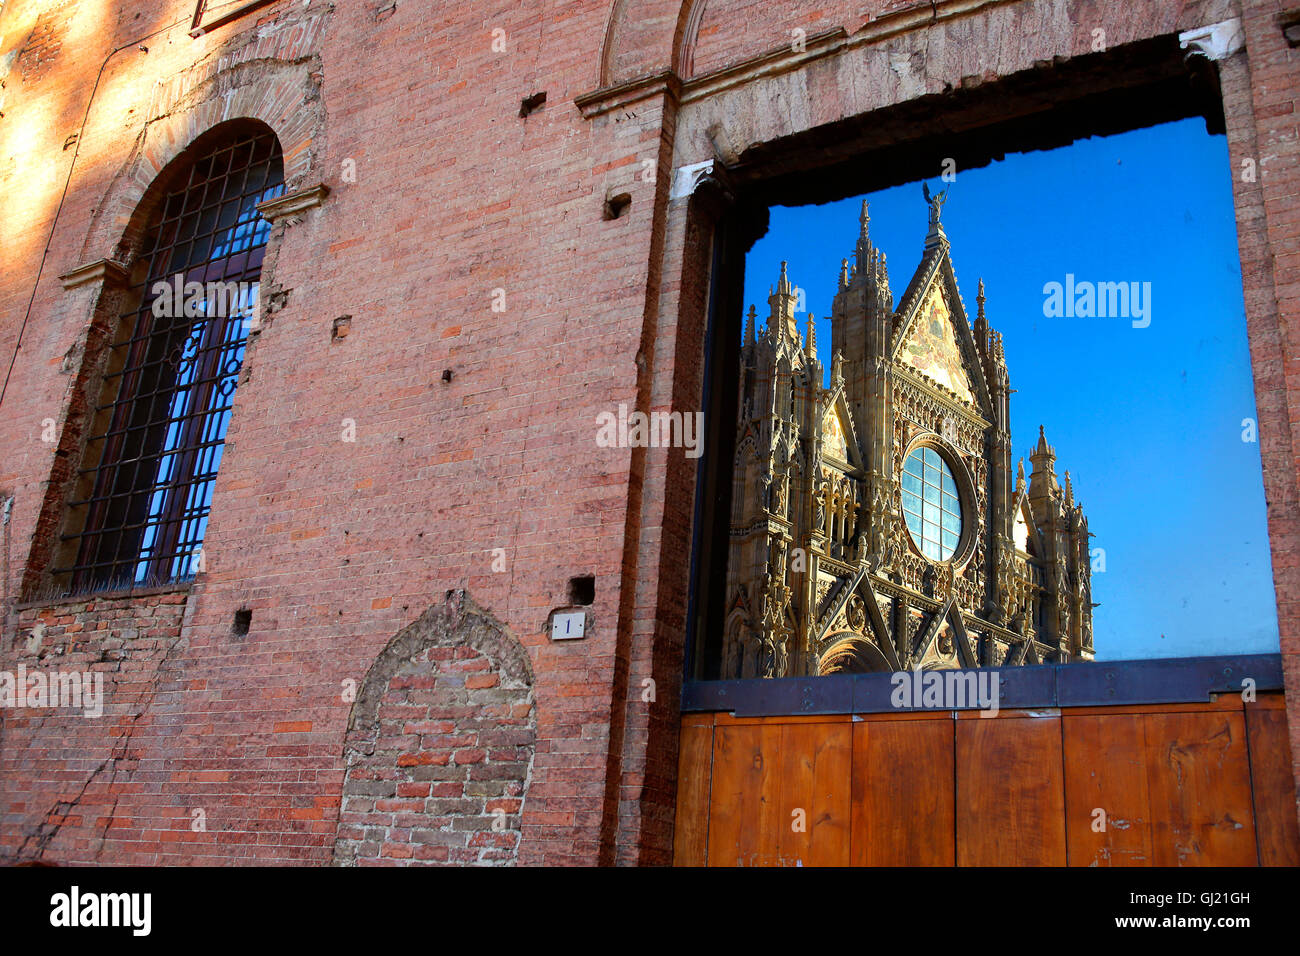 Siena Cathedral or Duomo reflected in a building on the Piazza del Duomo. Stock Photo